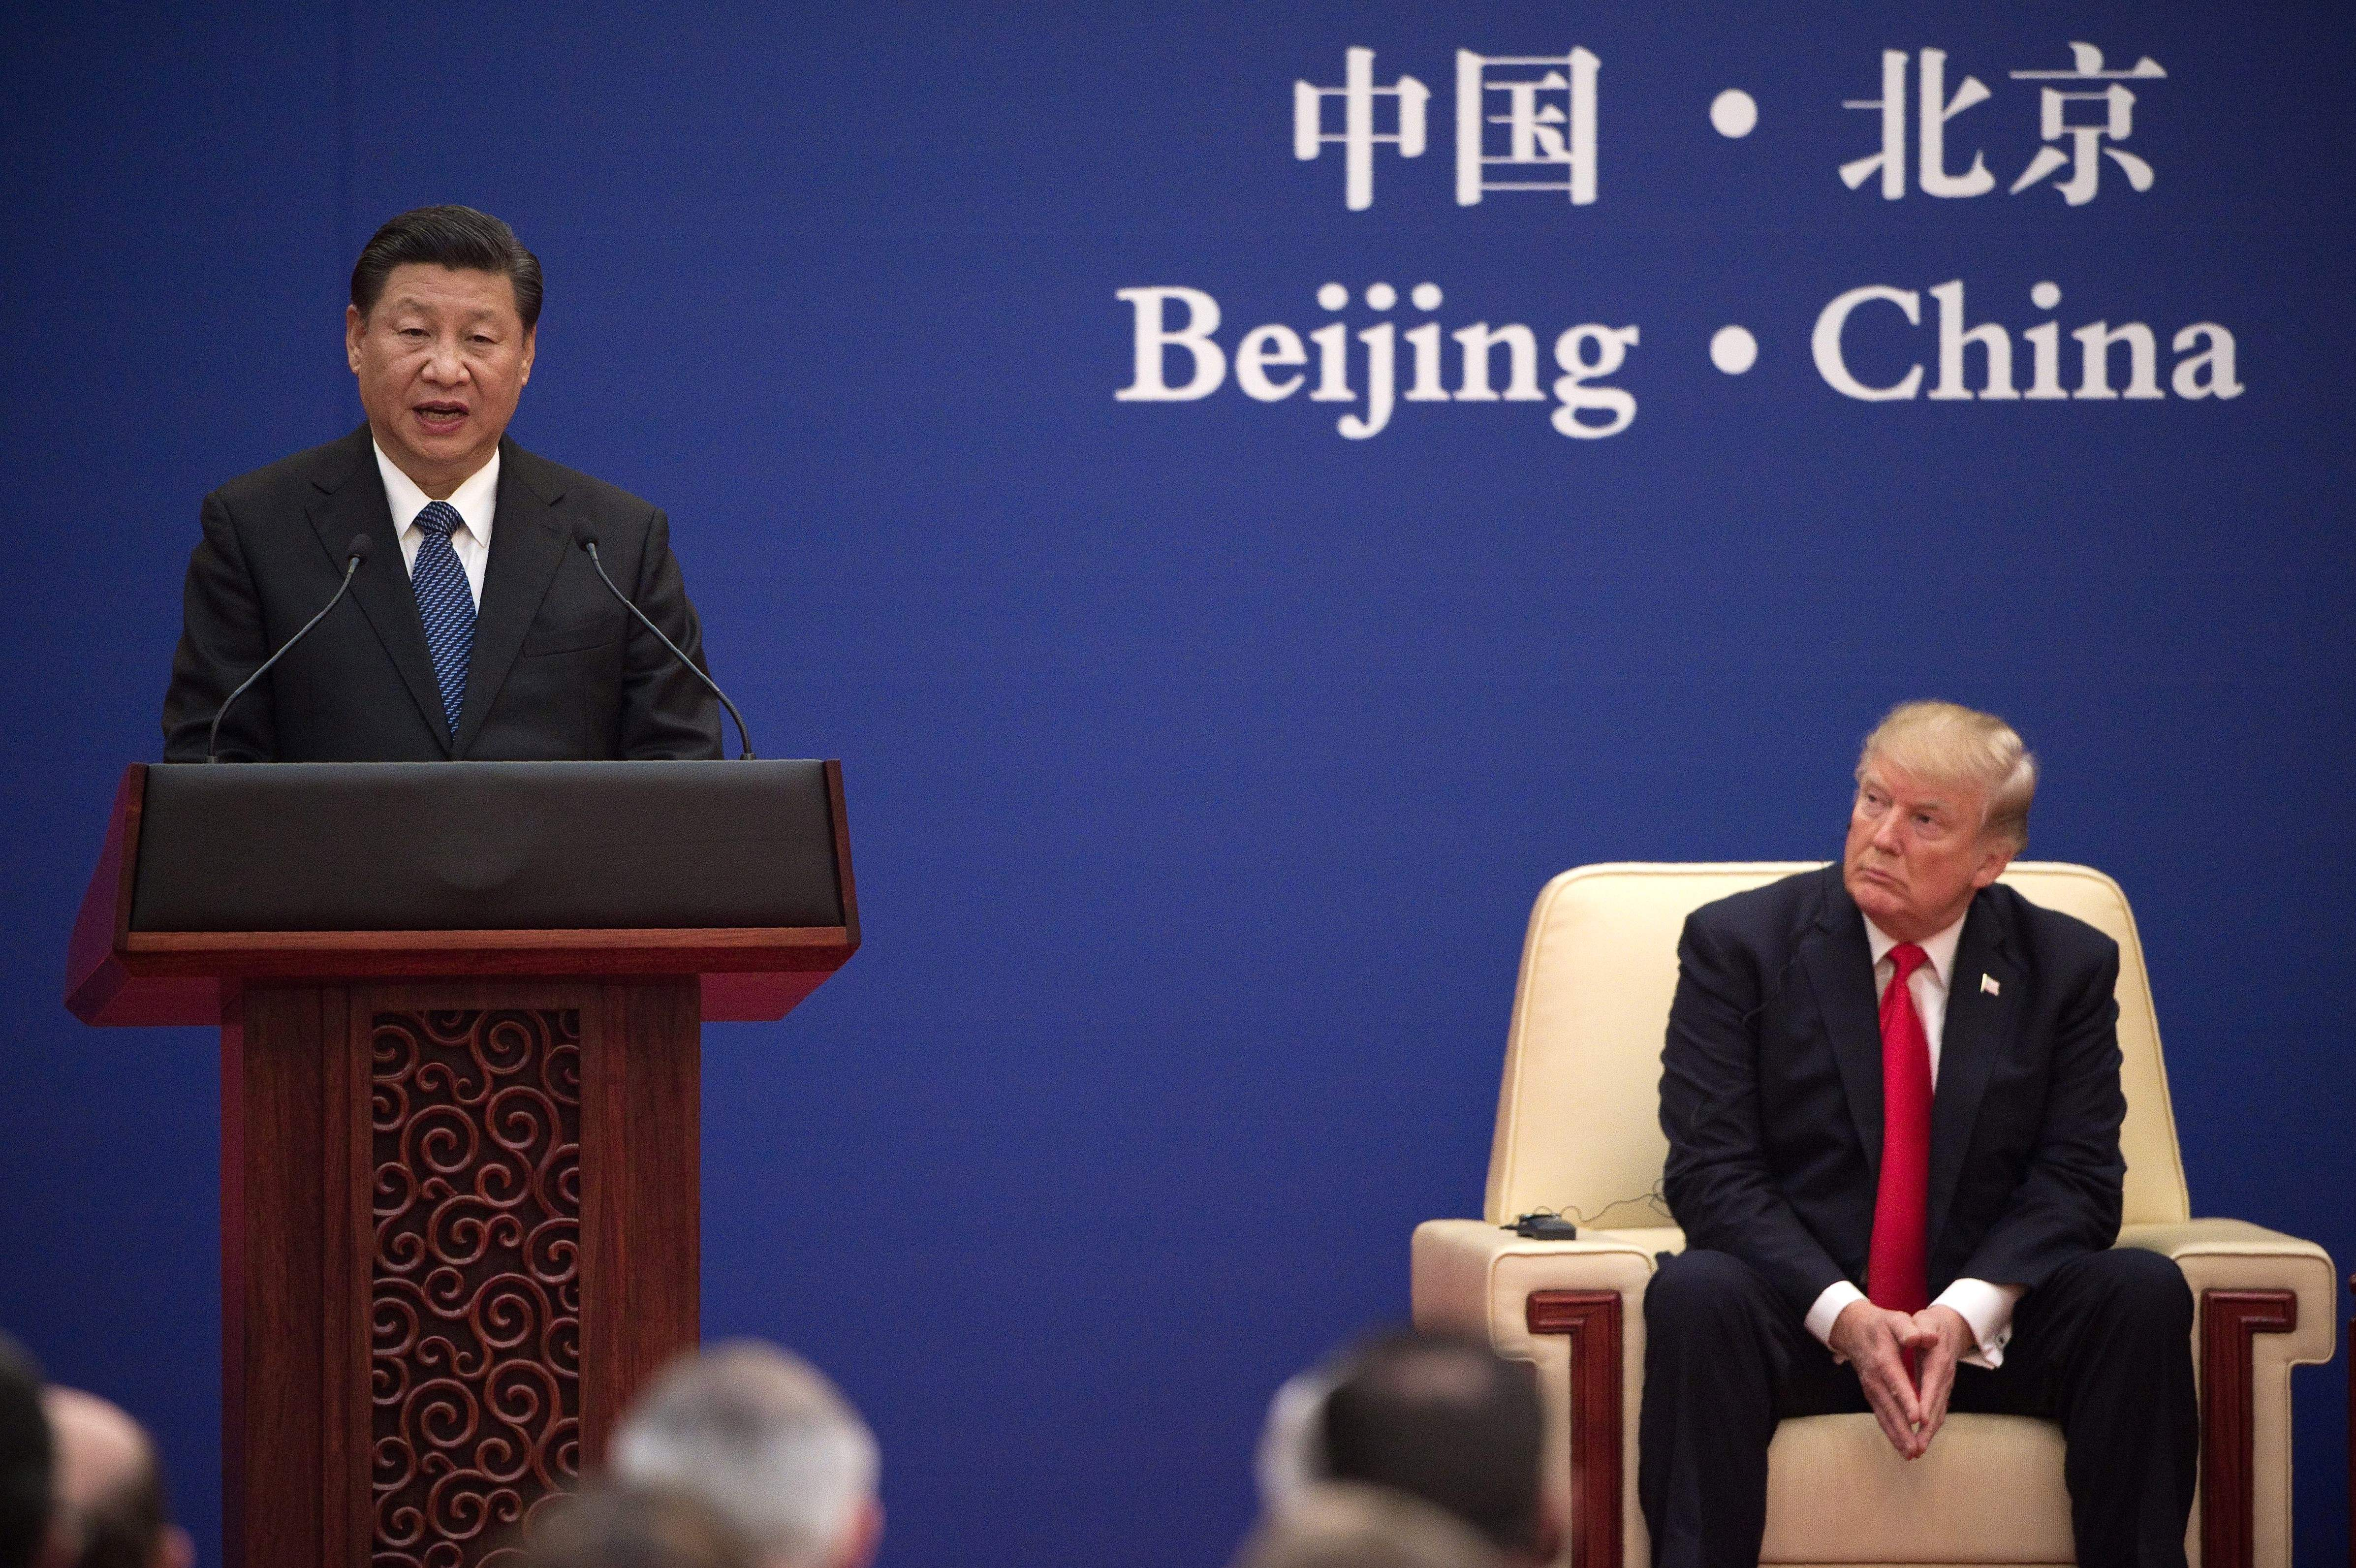 China's President Xi Jinping speaks next to US President Donald Trump during a business leaders event at the Great Hall of the People in Beijing on Nov. 9, 2017.